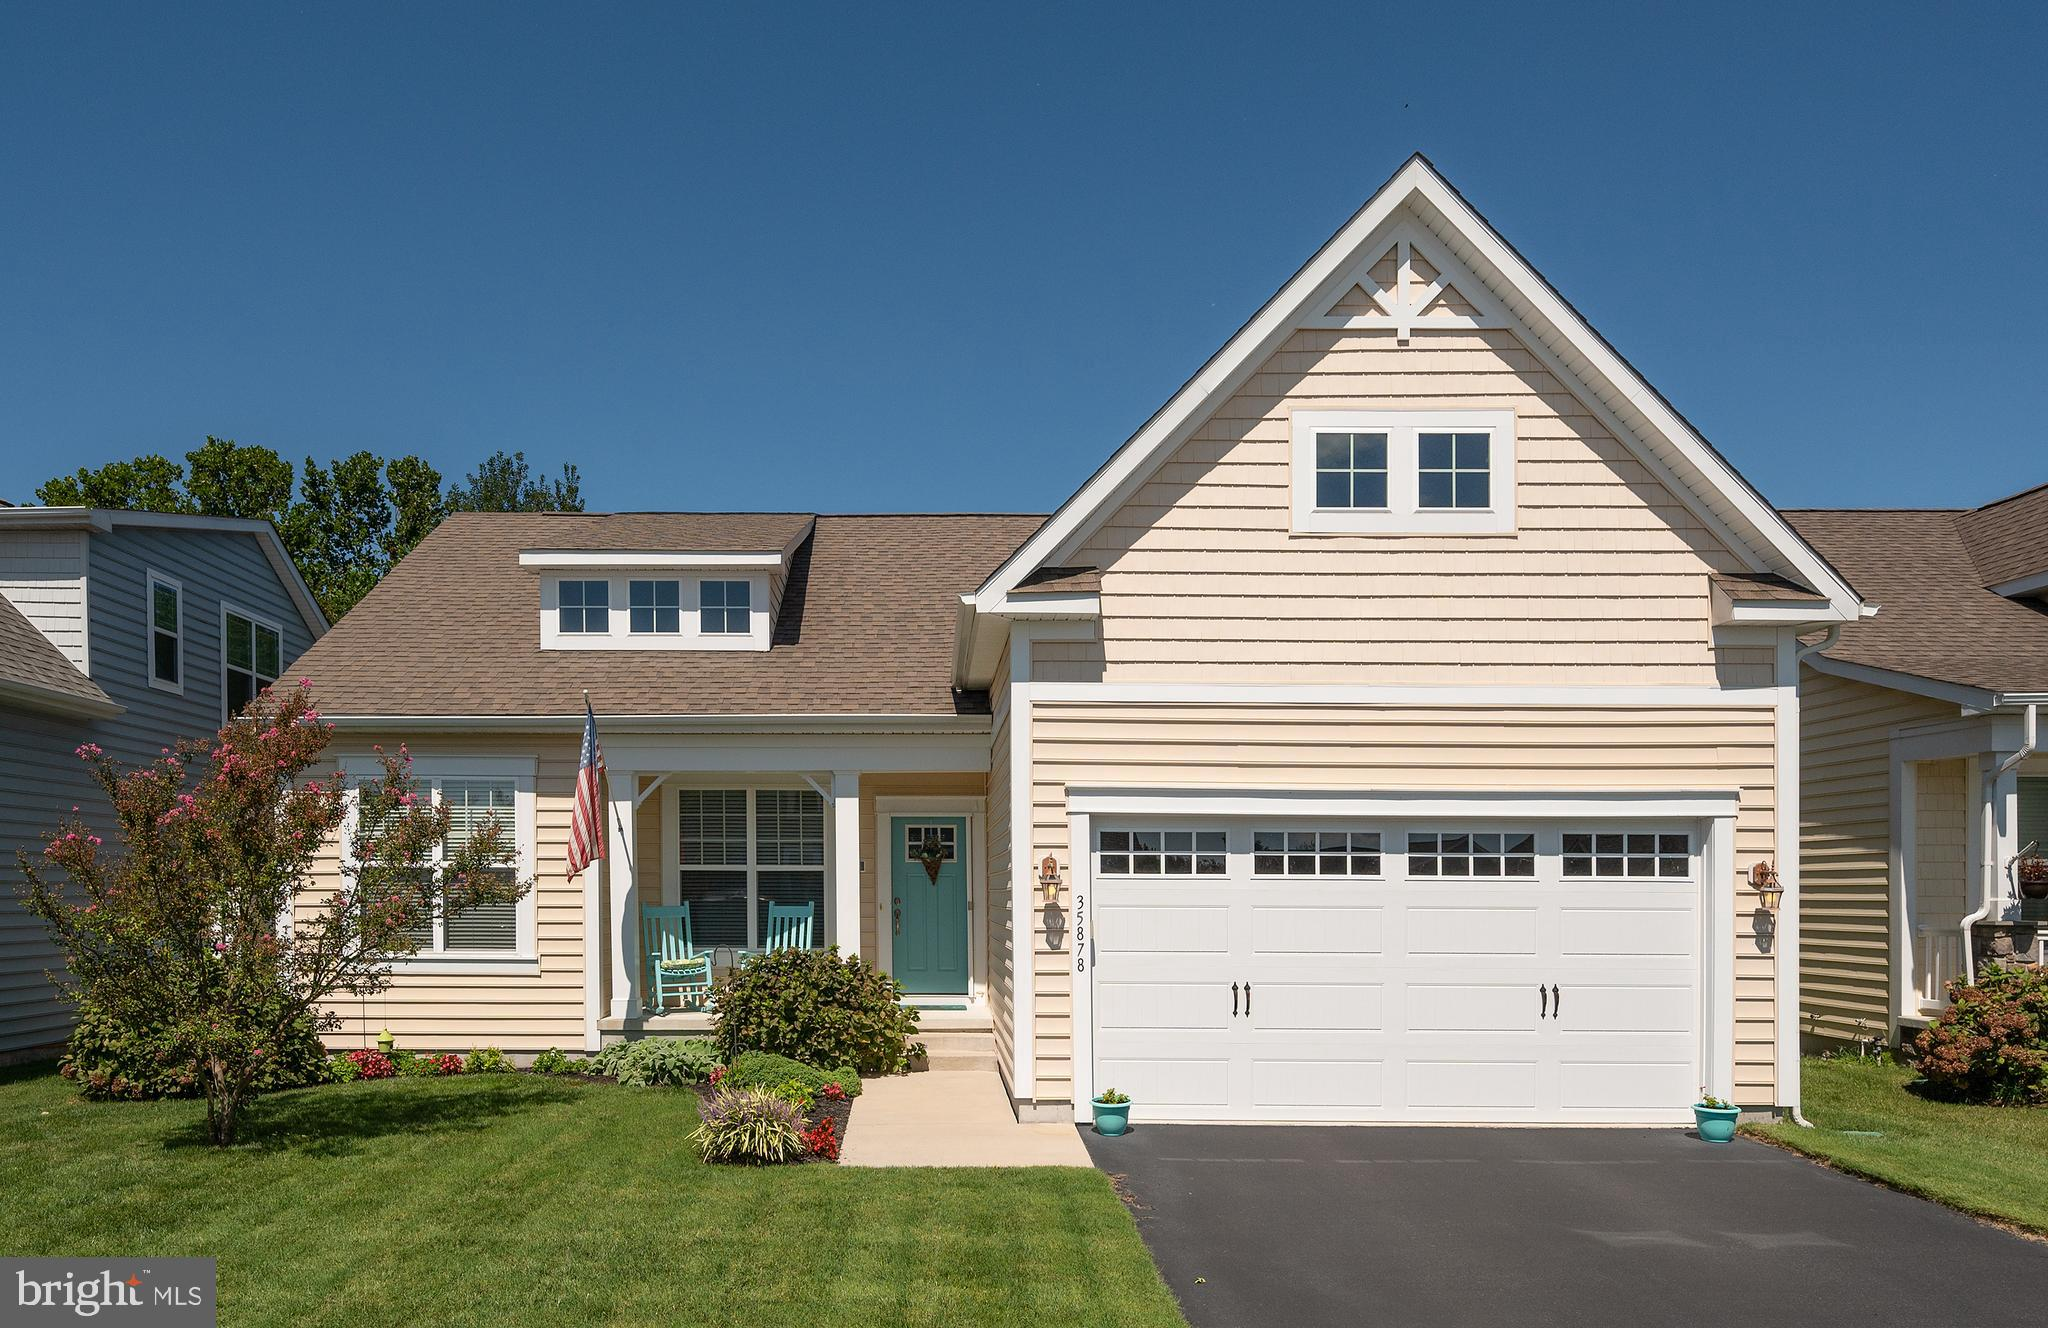 Welcome to one of the most sought-out communities in the delightful town of Millville. MILLVILLE BY